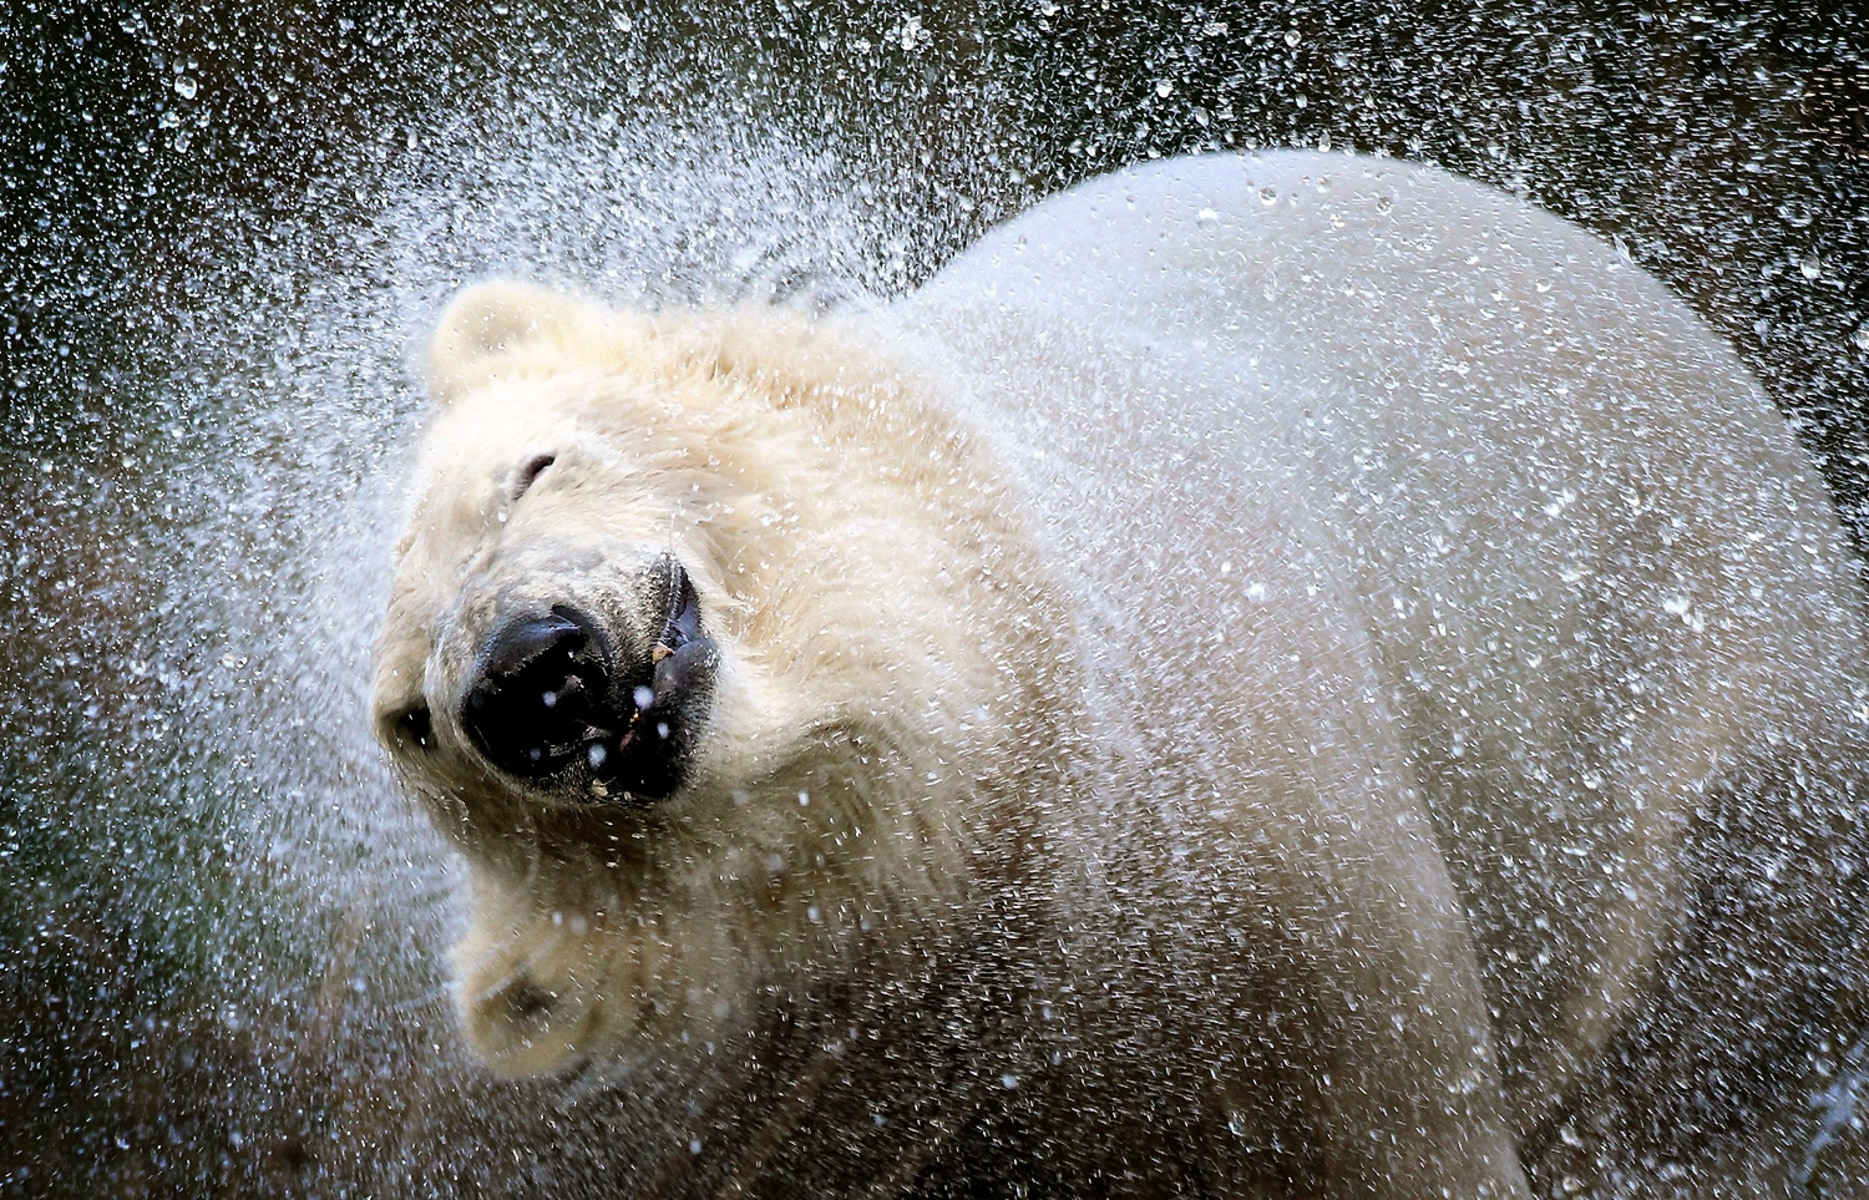 Image: The UK's Only Pair Of Polar Bears Are released Into Their 4 Acre Highland Home